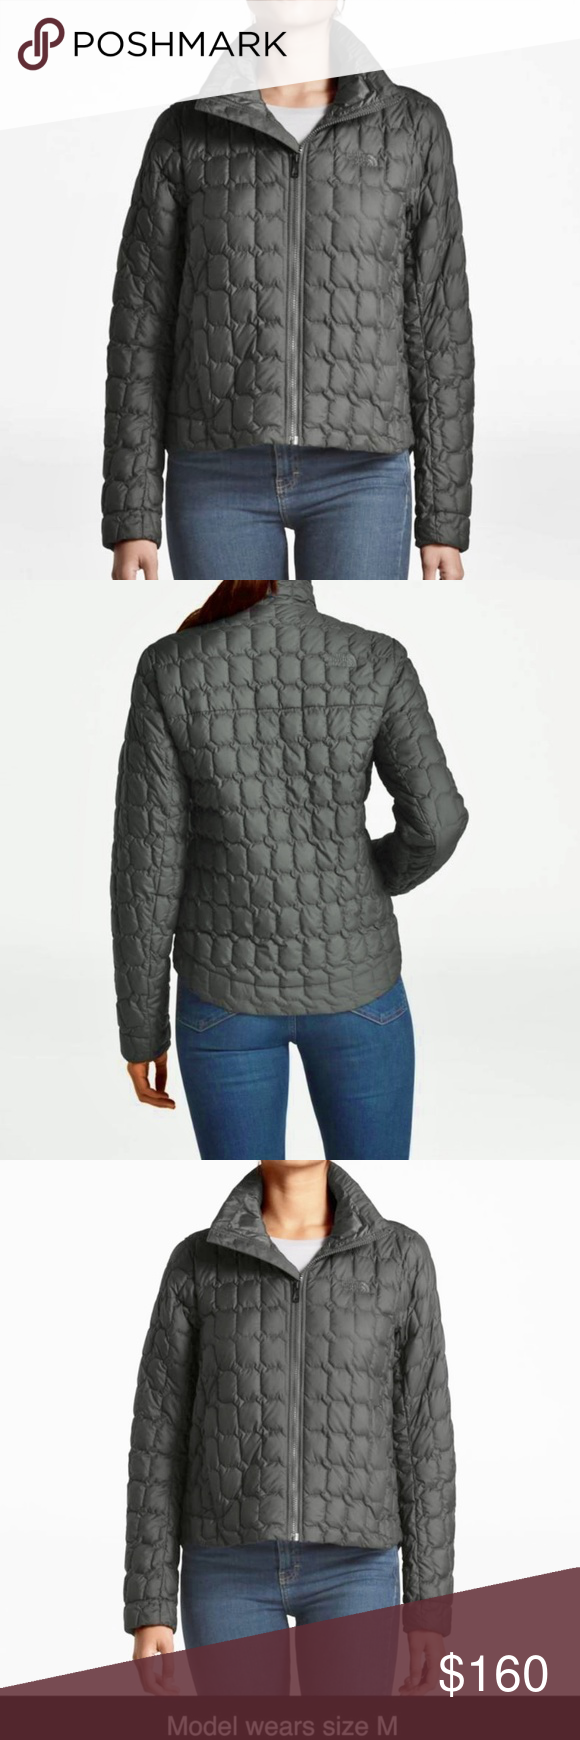 e056a6575 The North Face ThermoBall Crop Jacket Asphalt Grey The North Face ...